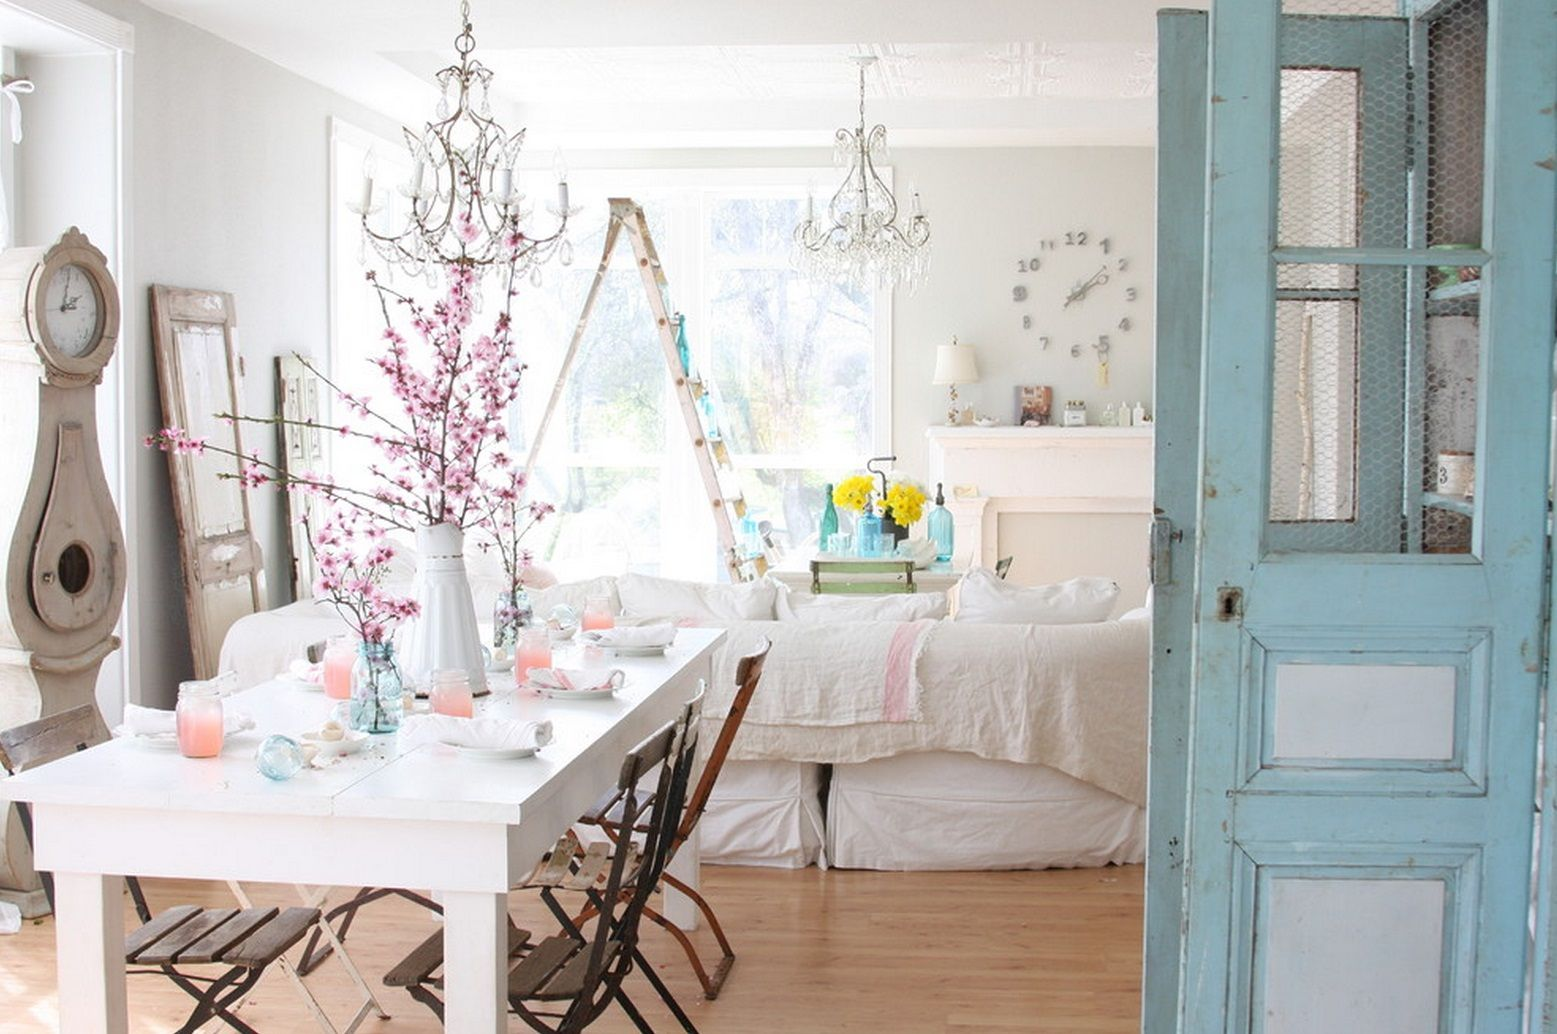 Shabby Chic Interior Design Style. Dining room comjoined with living zone in the modern shabby interior